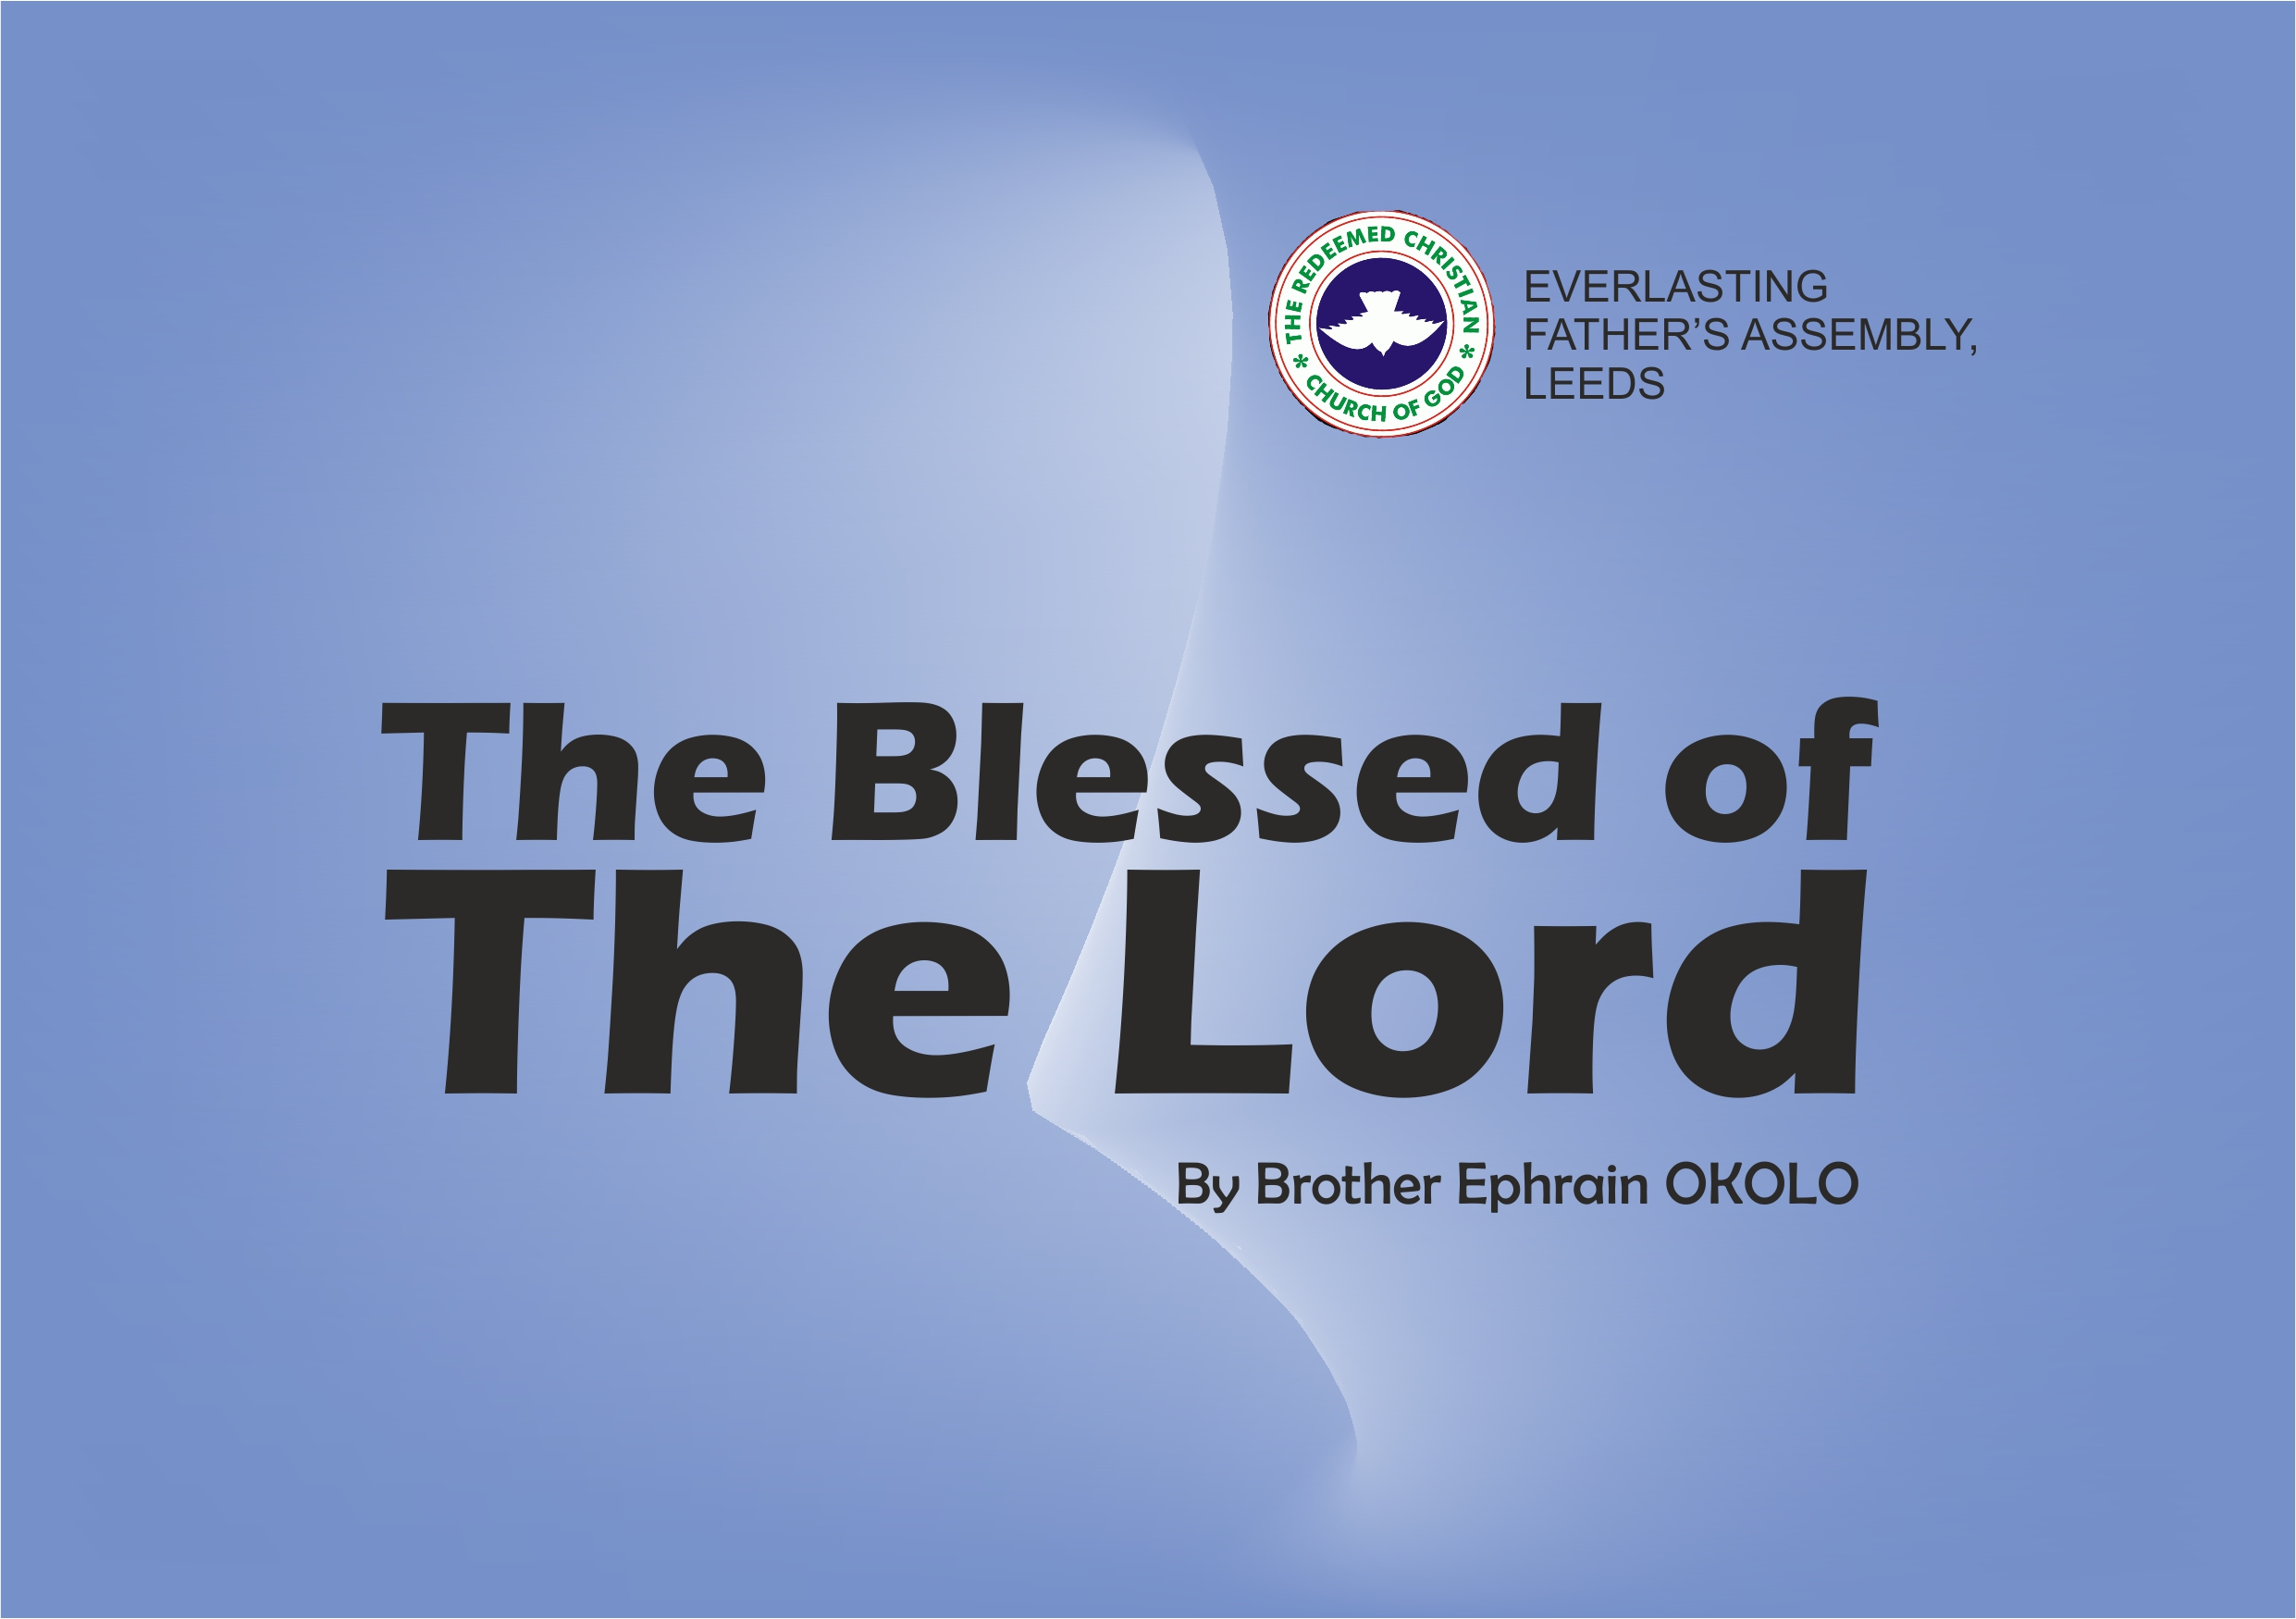 The Blessed of the Lord, by Brother Ephraim Okolo